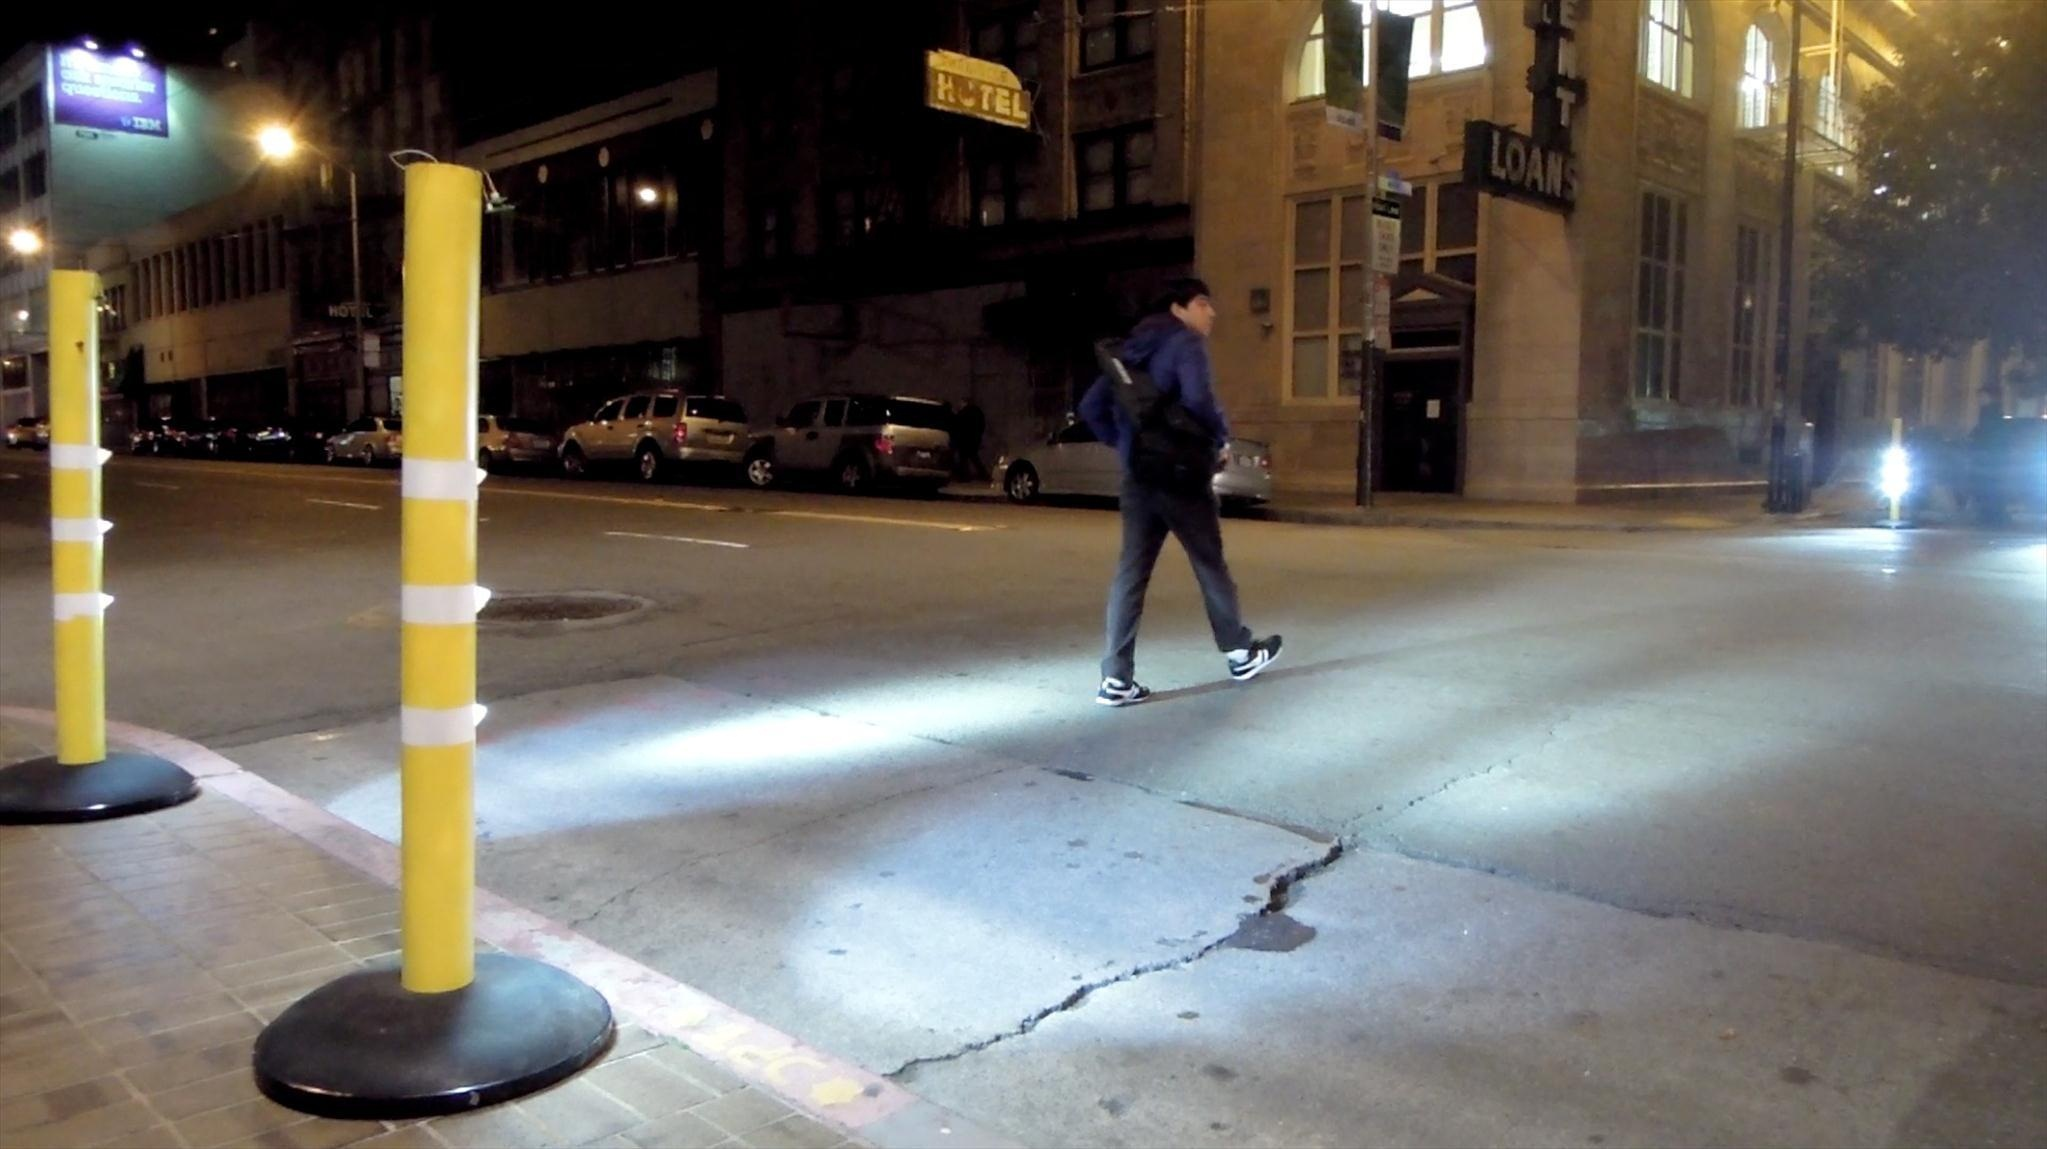 Illuminated crosswalk